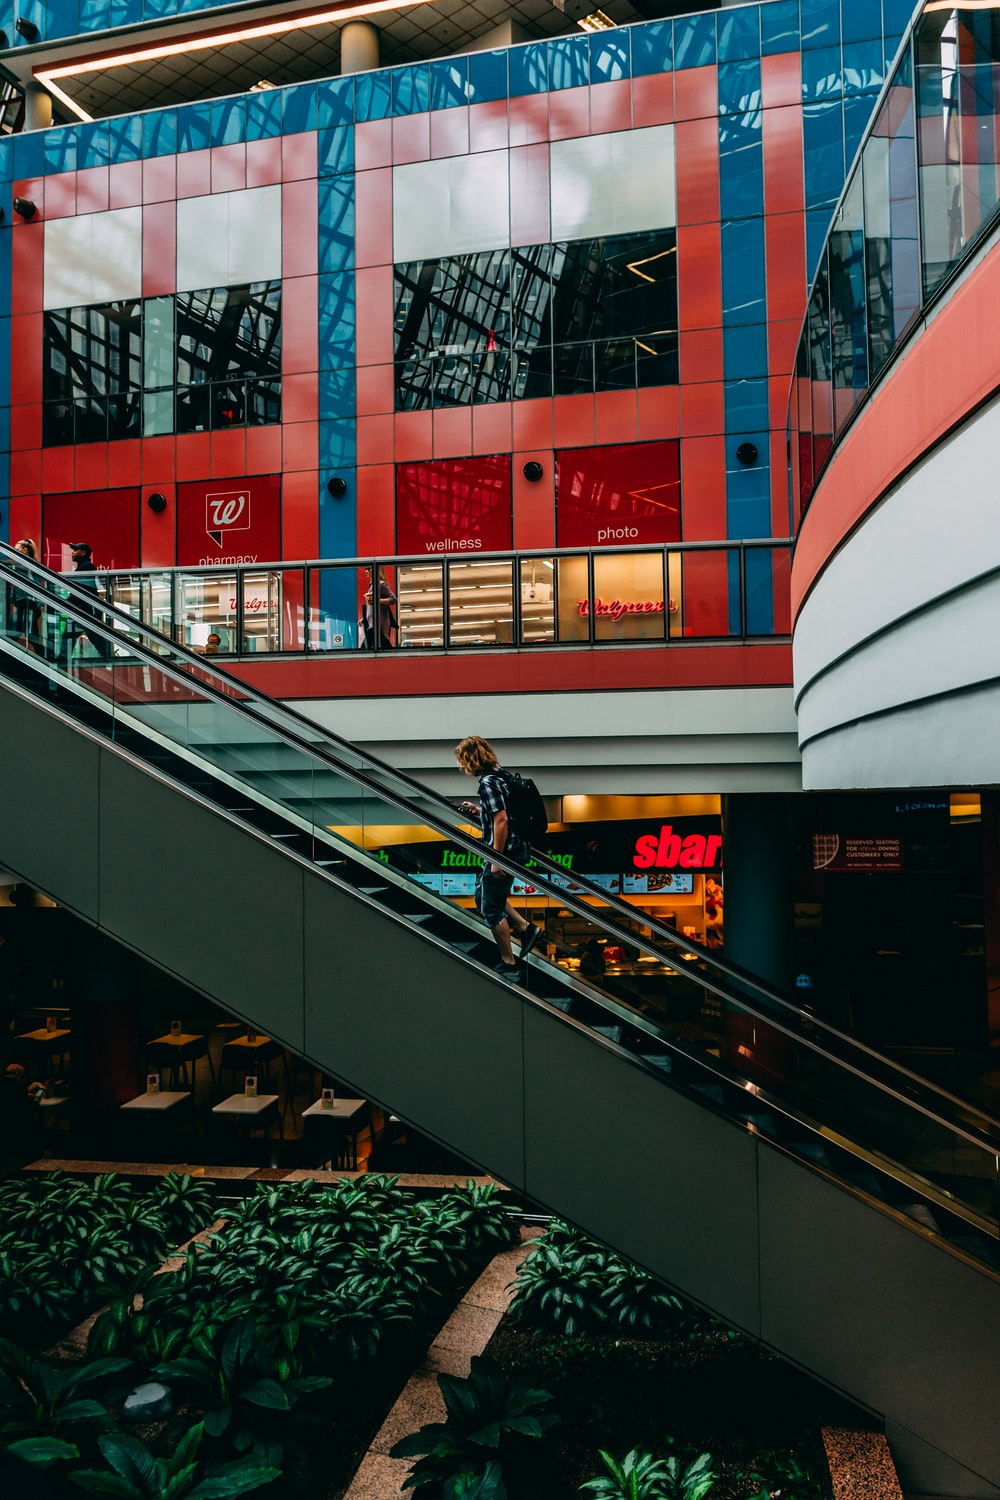 person carrying backpack on escalator photo